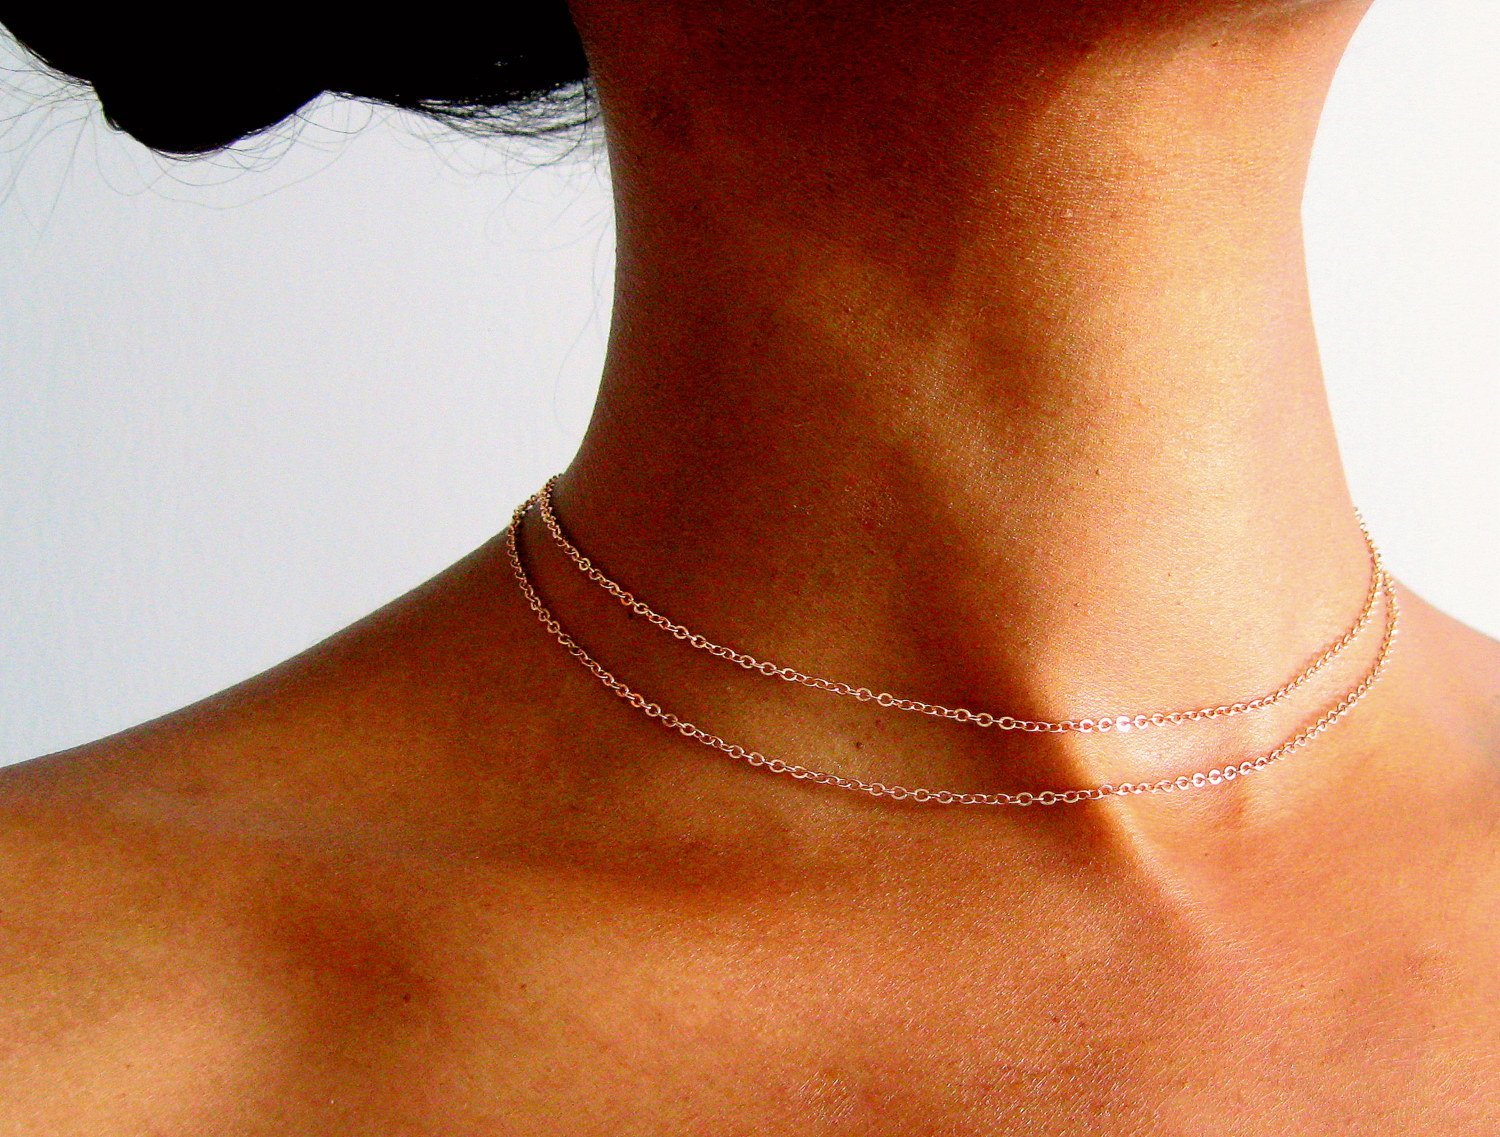 Thin Double Layered Rose Gold Choker Necklace for women, Adjustable 13